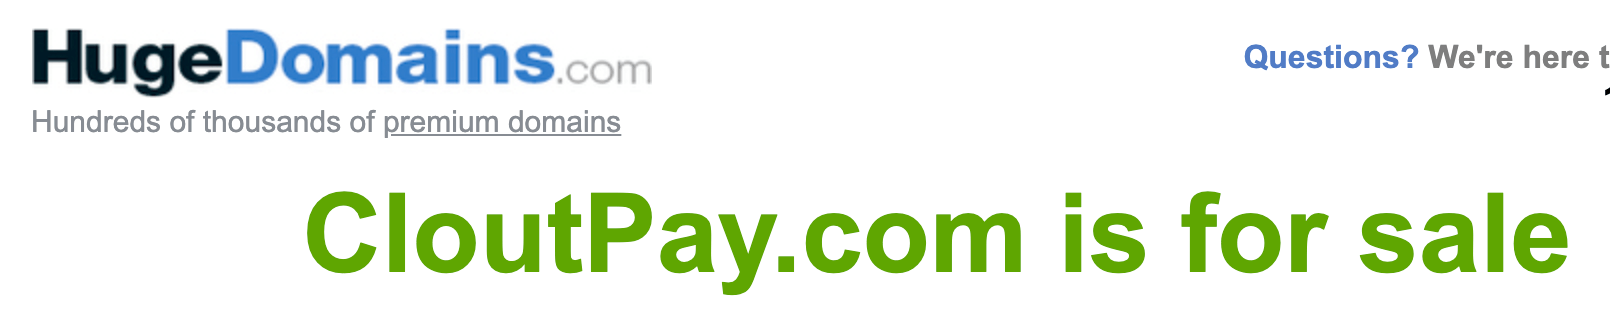 clout-pay-domain-on-sale